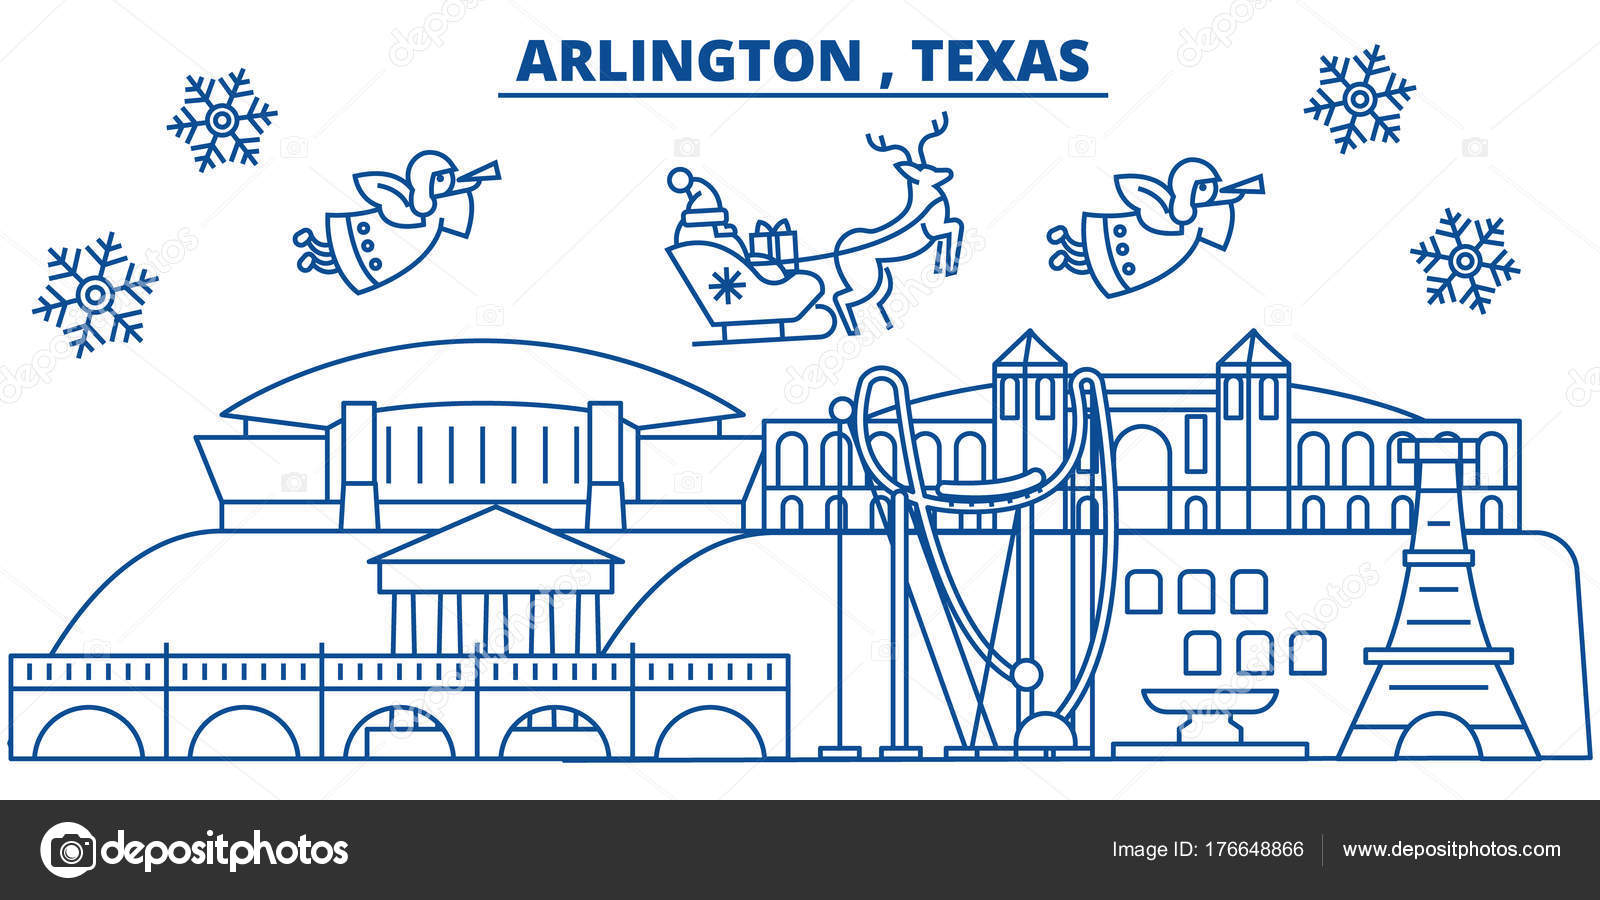 usa texas arlington winter city skyline merry christmas and happy new year decorated